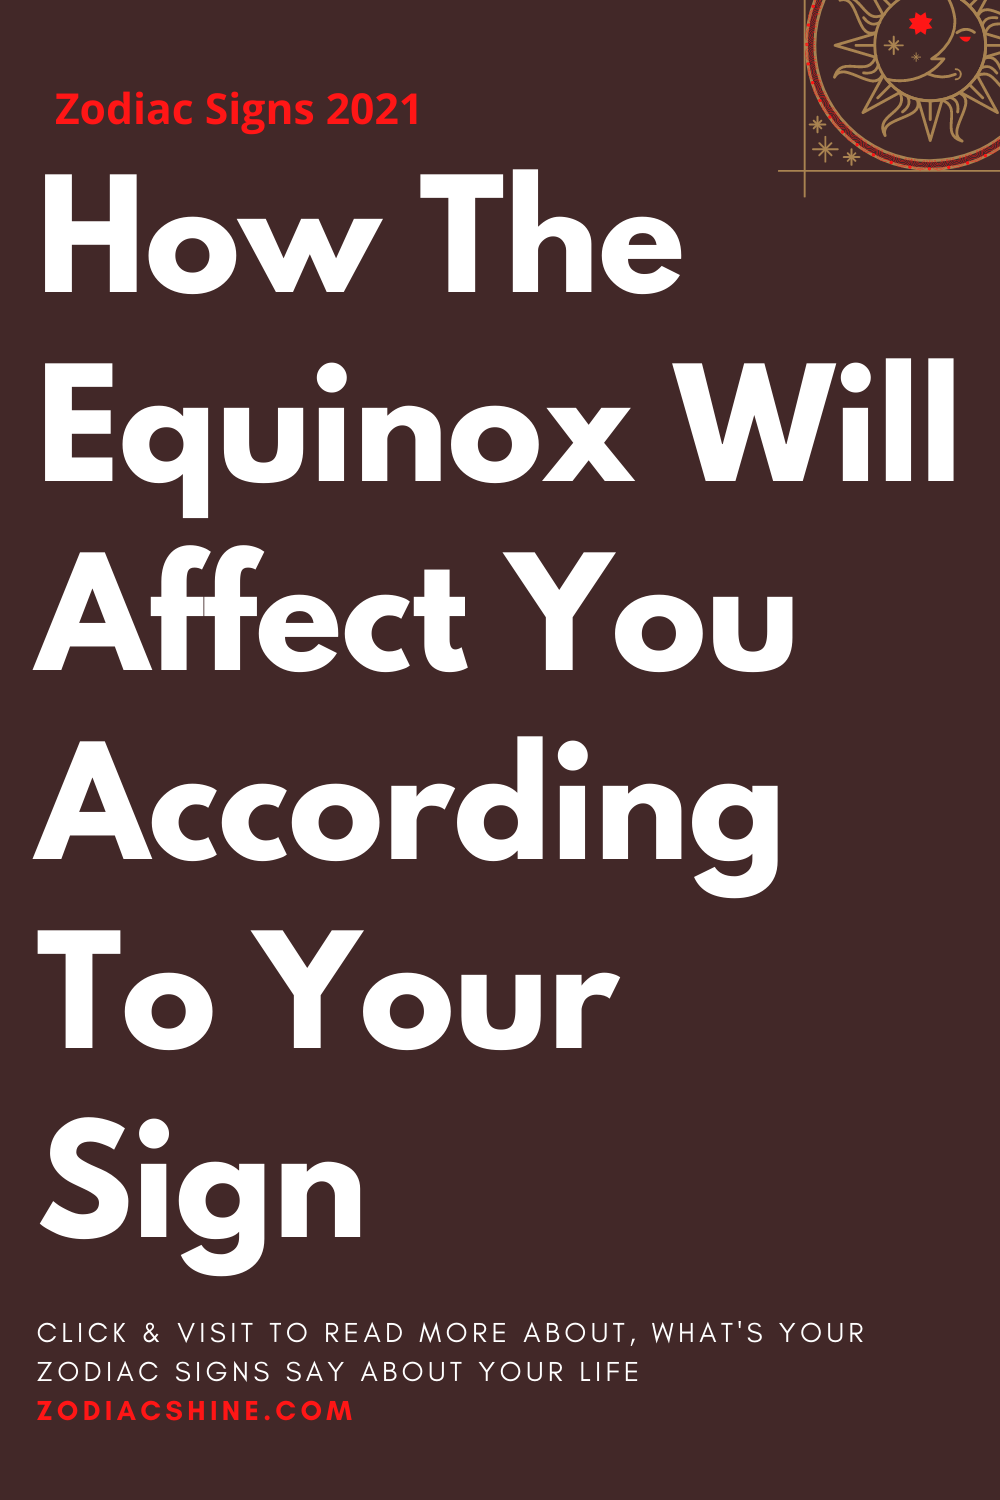 How The Equinox Will Affect You According To Your Sign